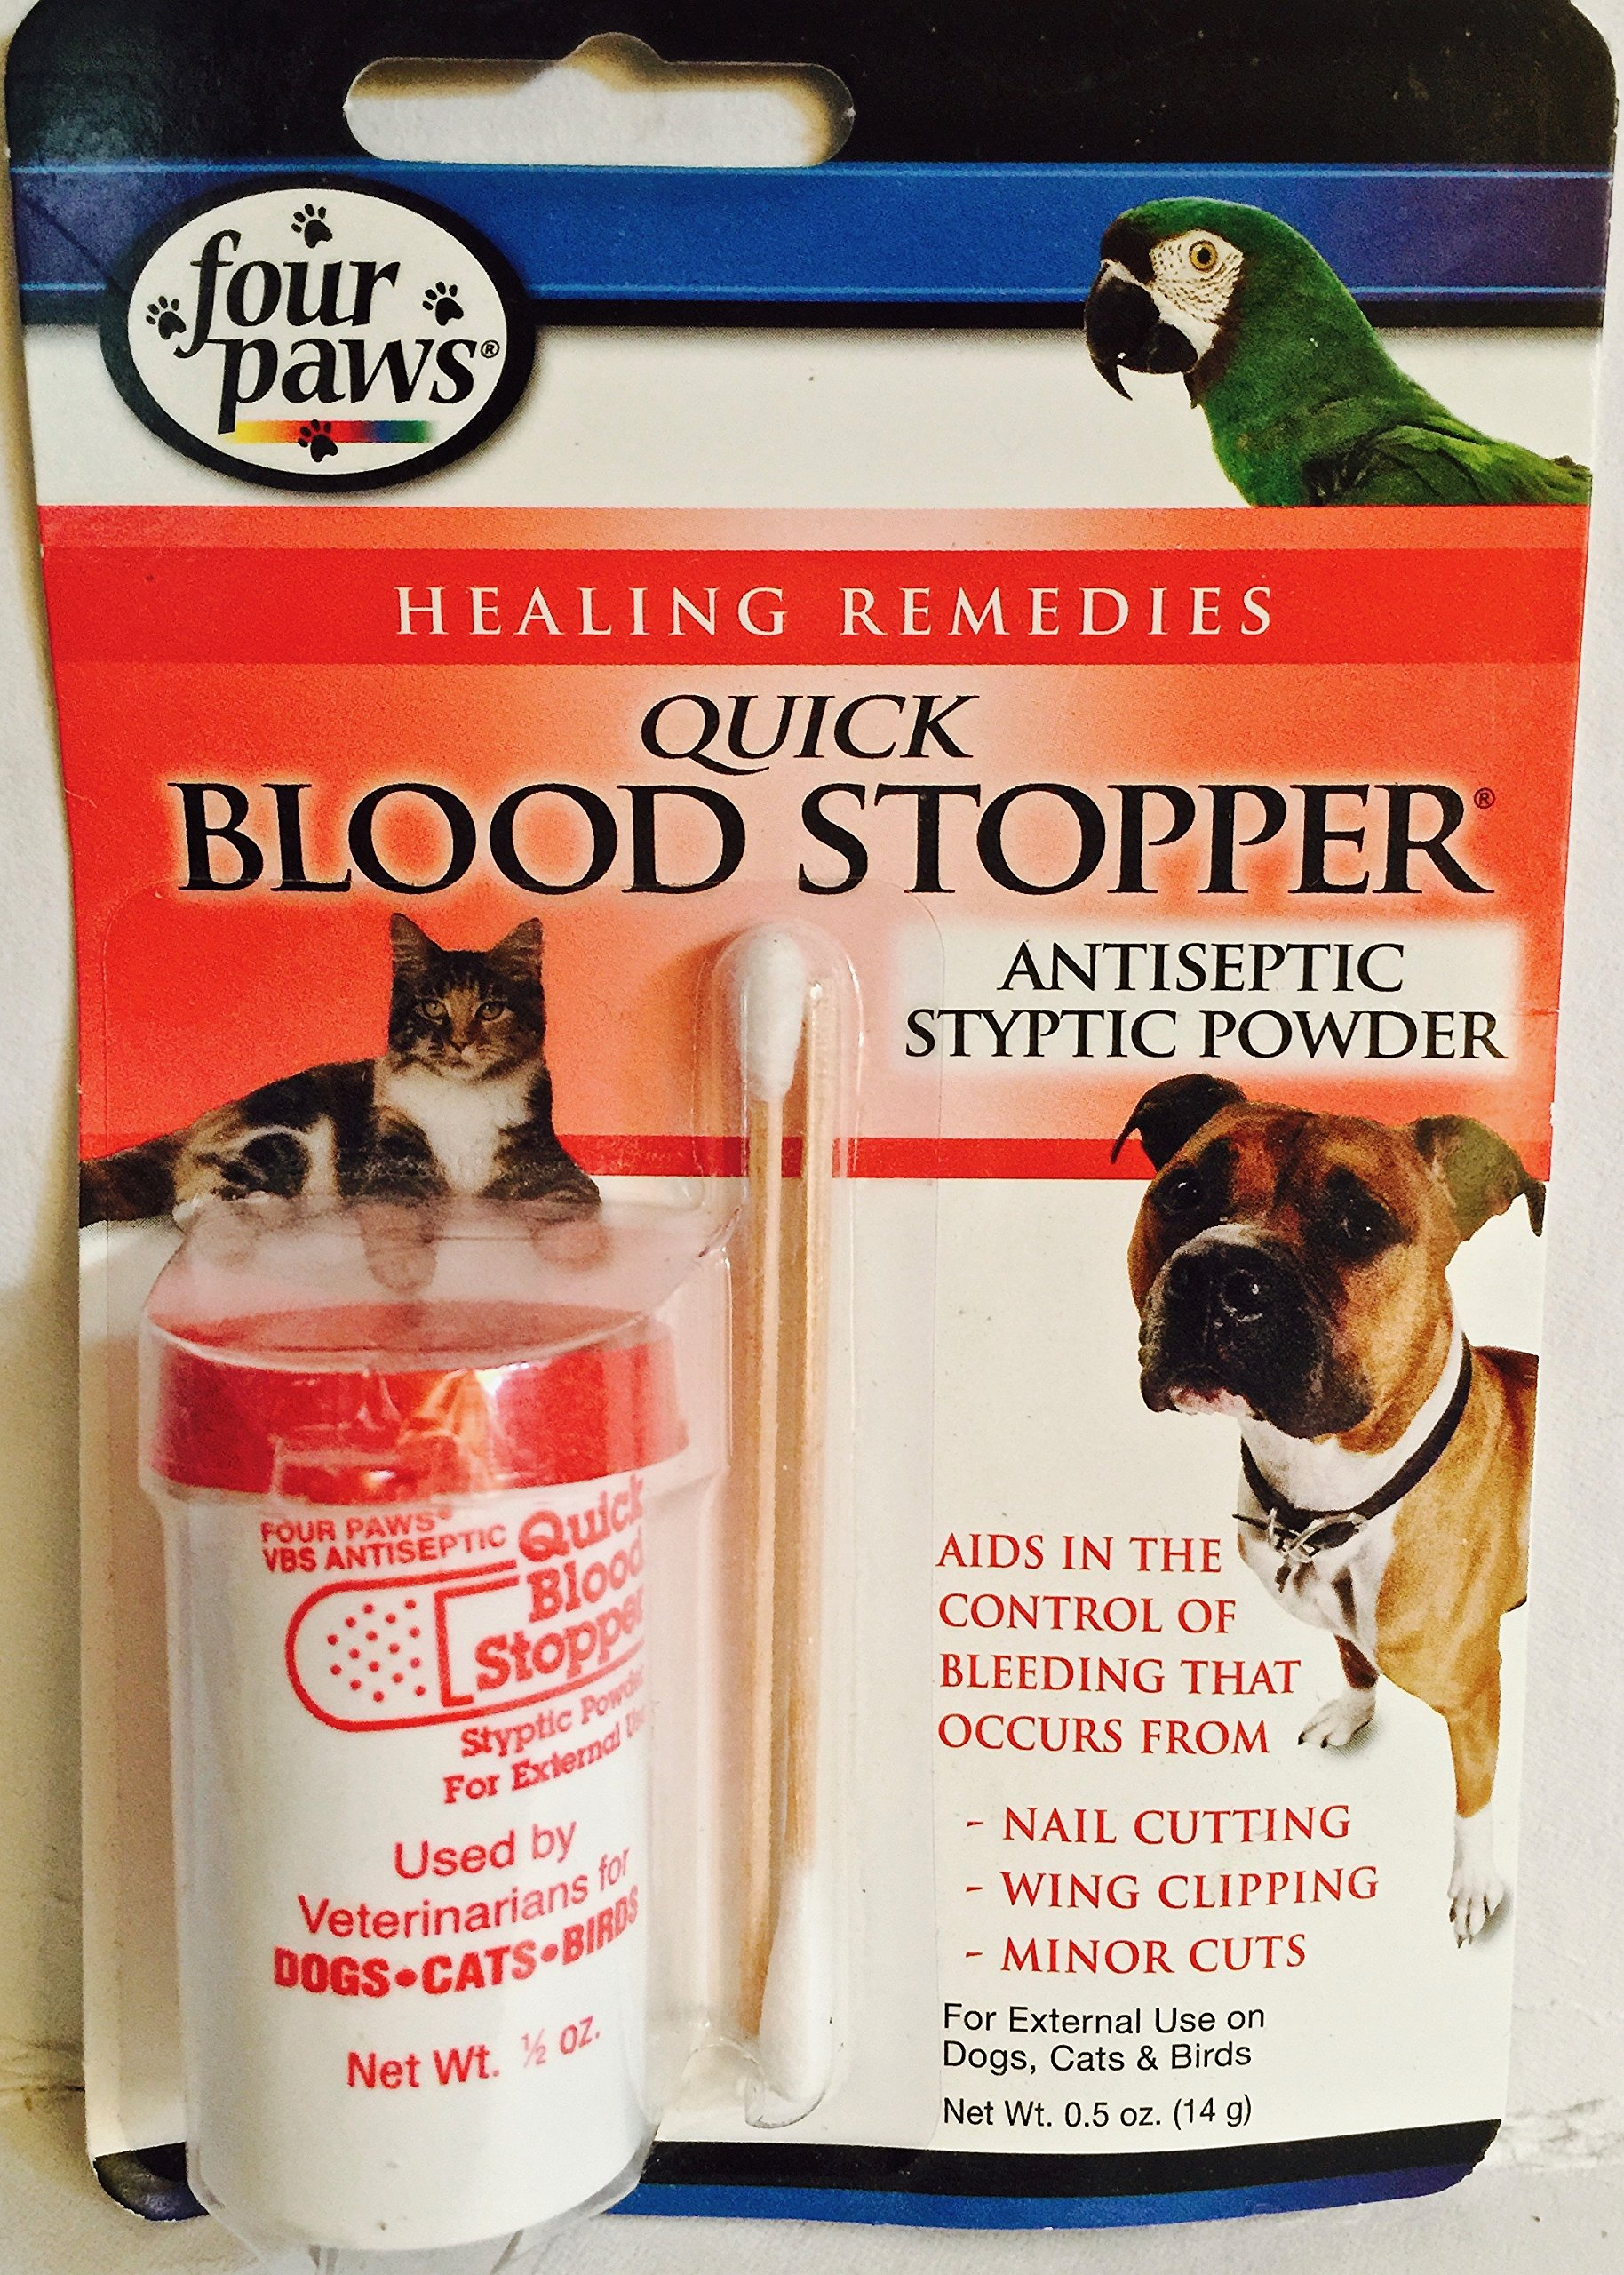 FOUR PAWS QUICK STOP BLOOD STOPPER ANTISEPTIC STYPTIC POWDER FOR DOGS, CATS, BIRDS, SMALL MAMMALS